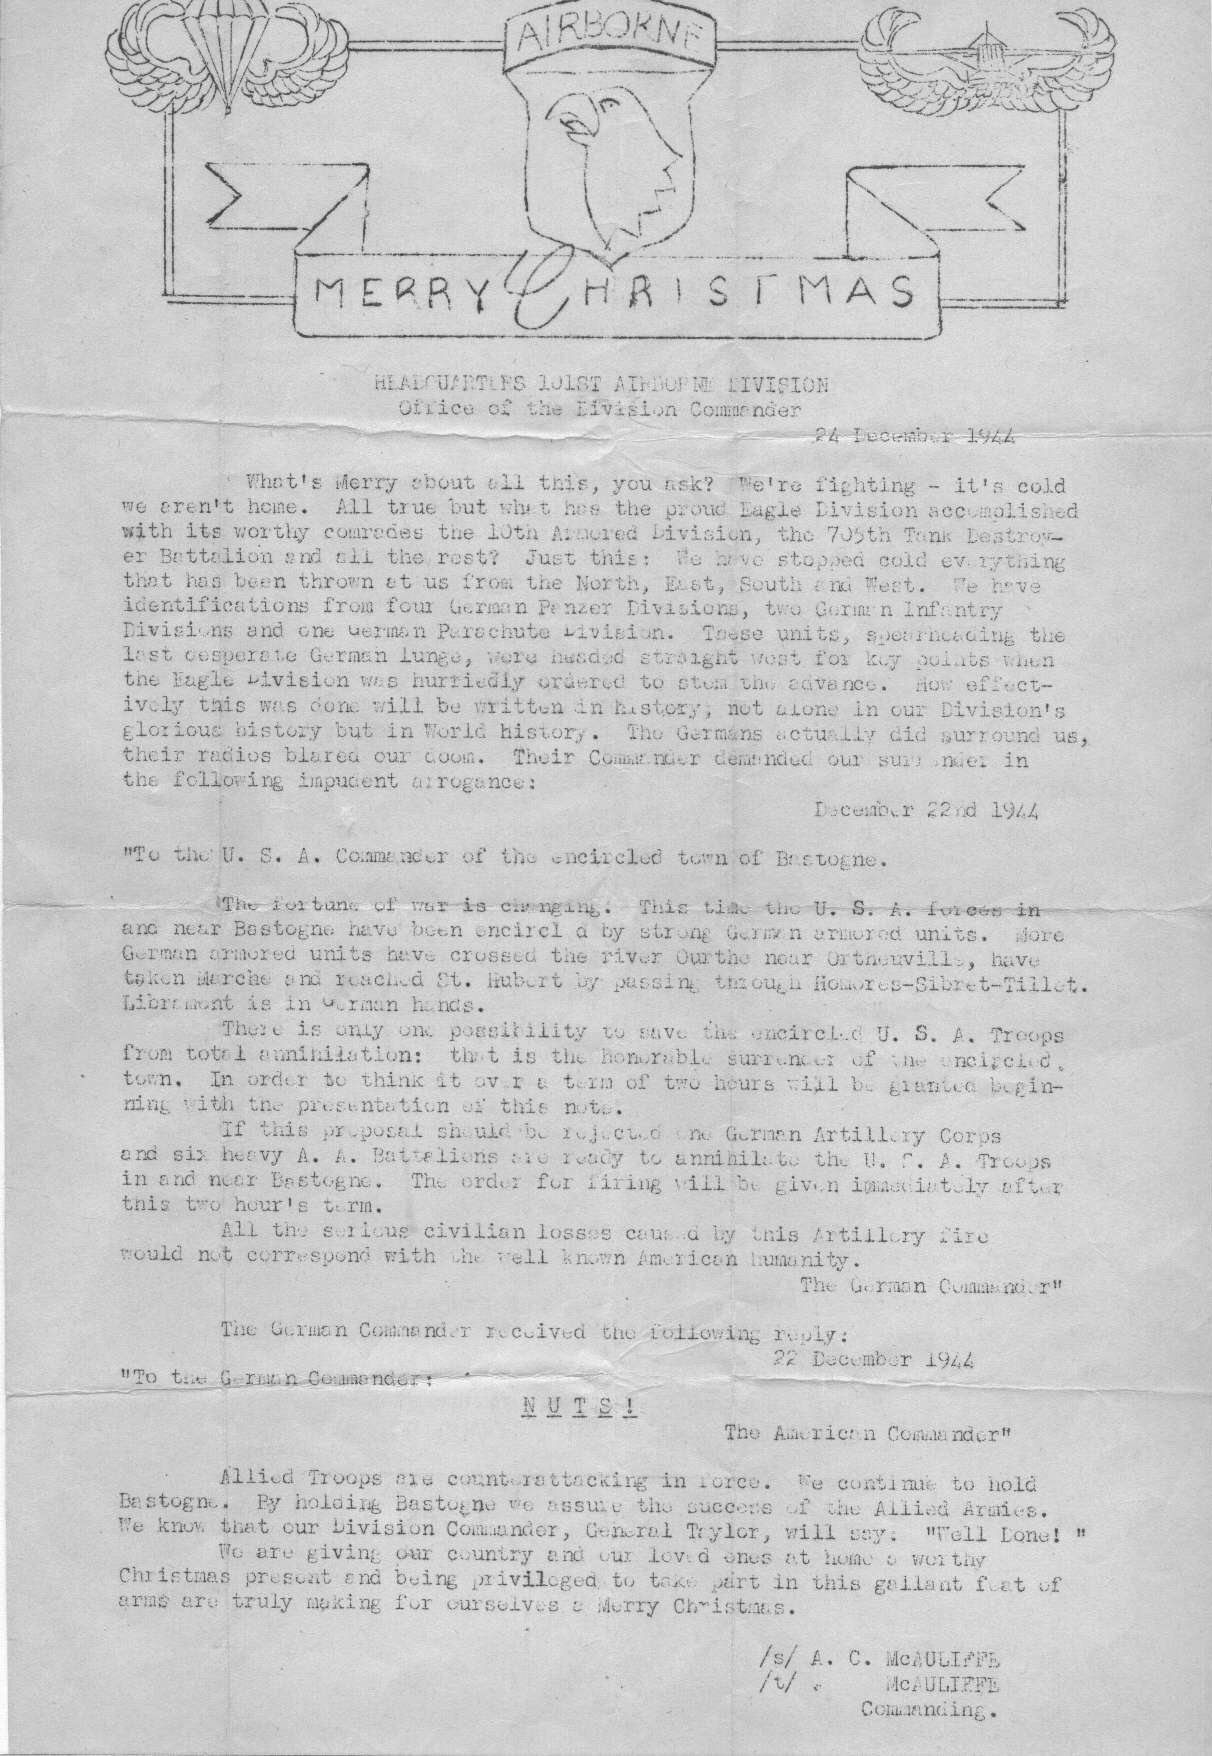 Brig. Gen. Anthony McAuliffe's Christmas letter to the US 101st Airborne Division at Bastogne, Belgium in which he recreated the German surrender demand and his response (Source: US Army)